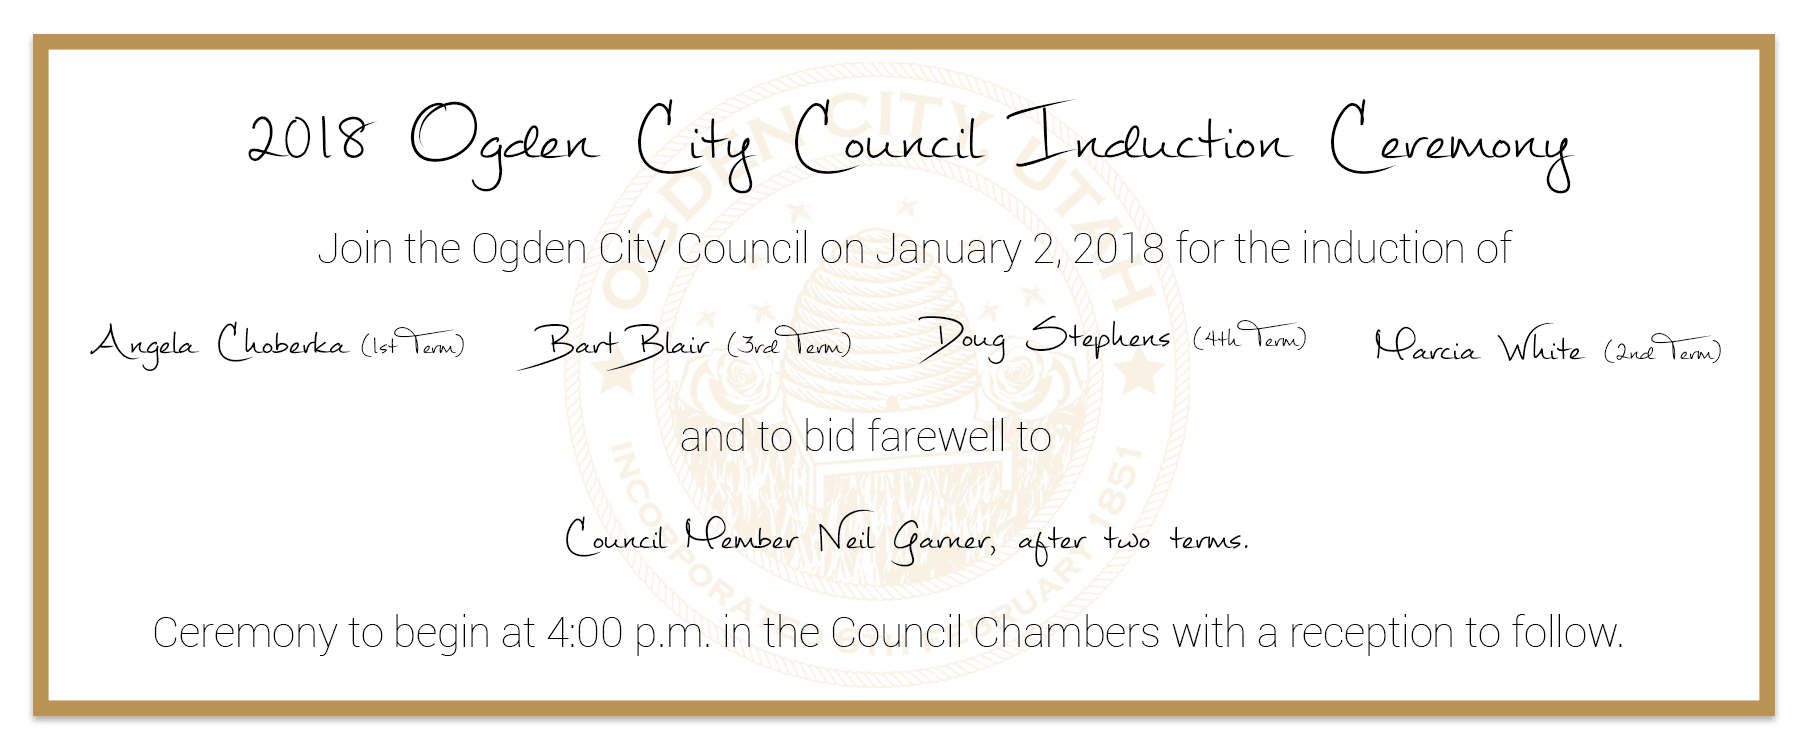 The 2018 Ogden City Council Induction Ceremony will be held on January 2, 2018 at 4:00 p.m. in the O